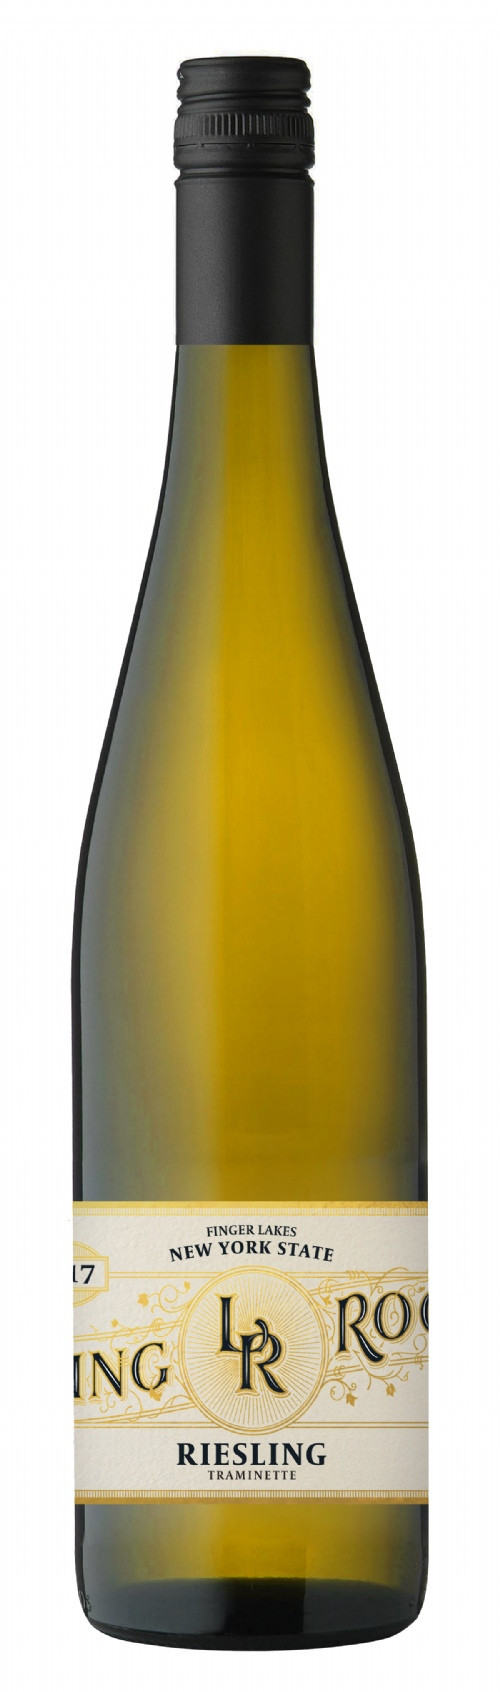 2017 Living Roots Traminette Riesling 750ml